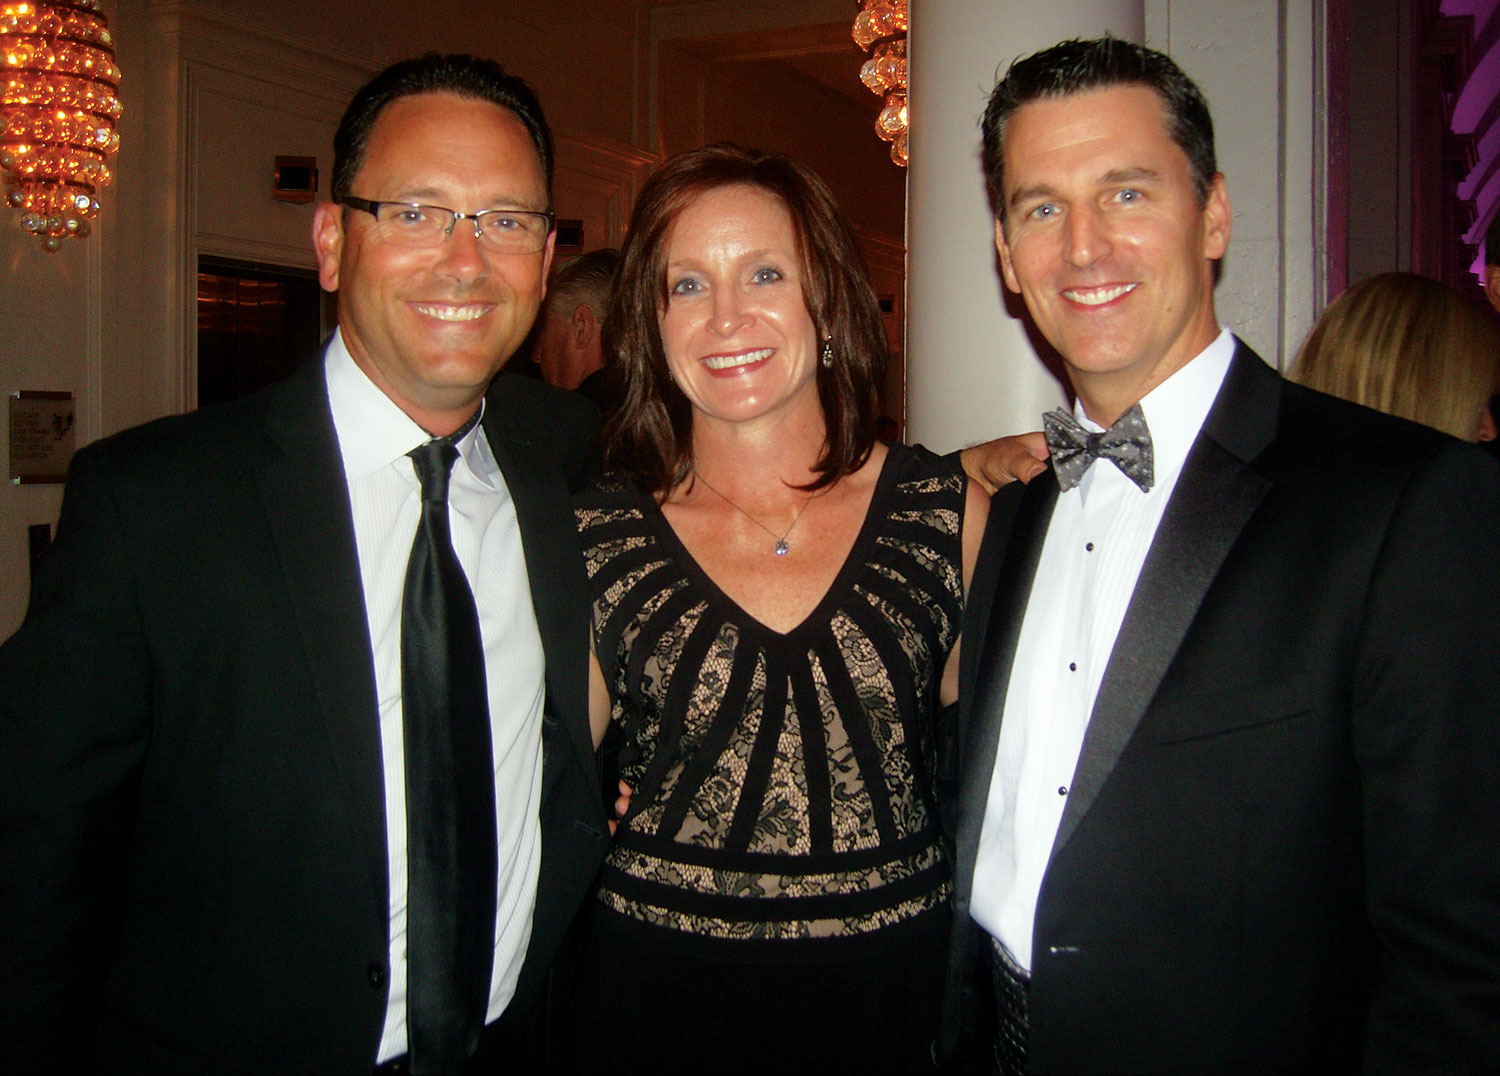 Mark Quinn, left, Leggett & Platt; April and Craig McAndrews, Mattress Firm, Houston.